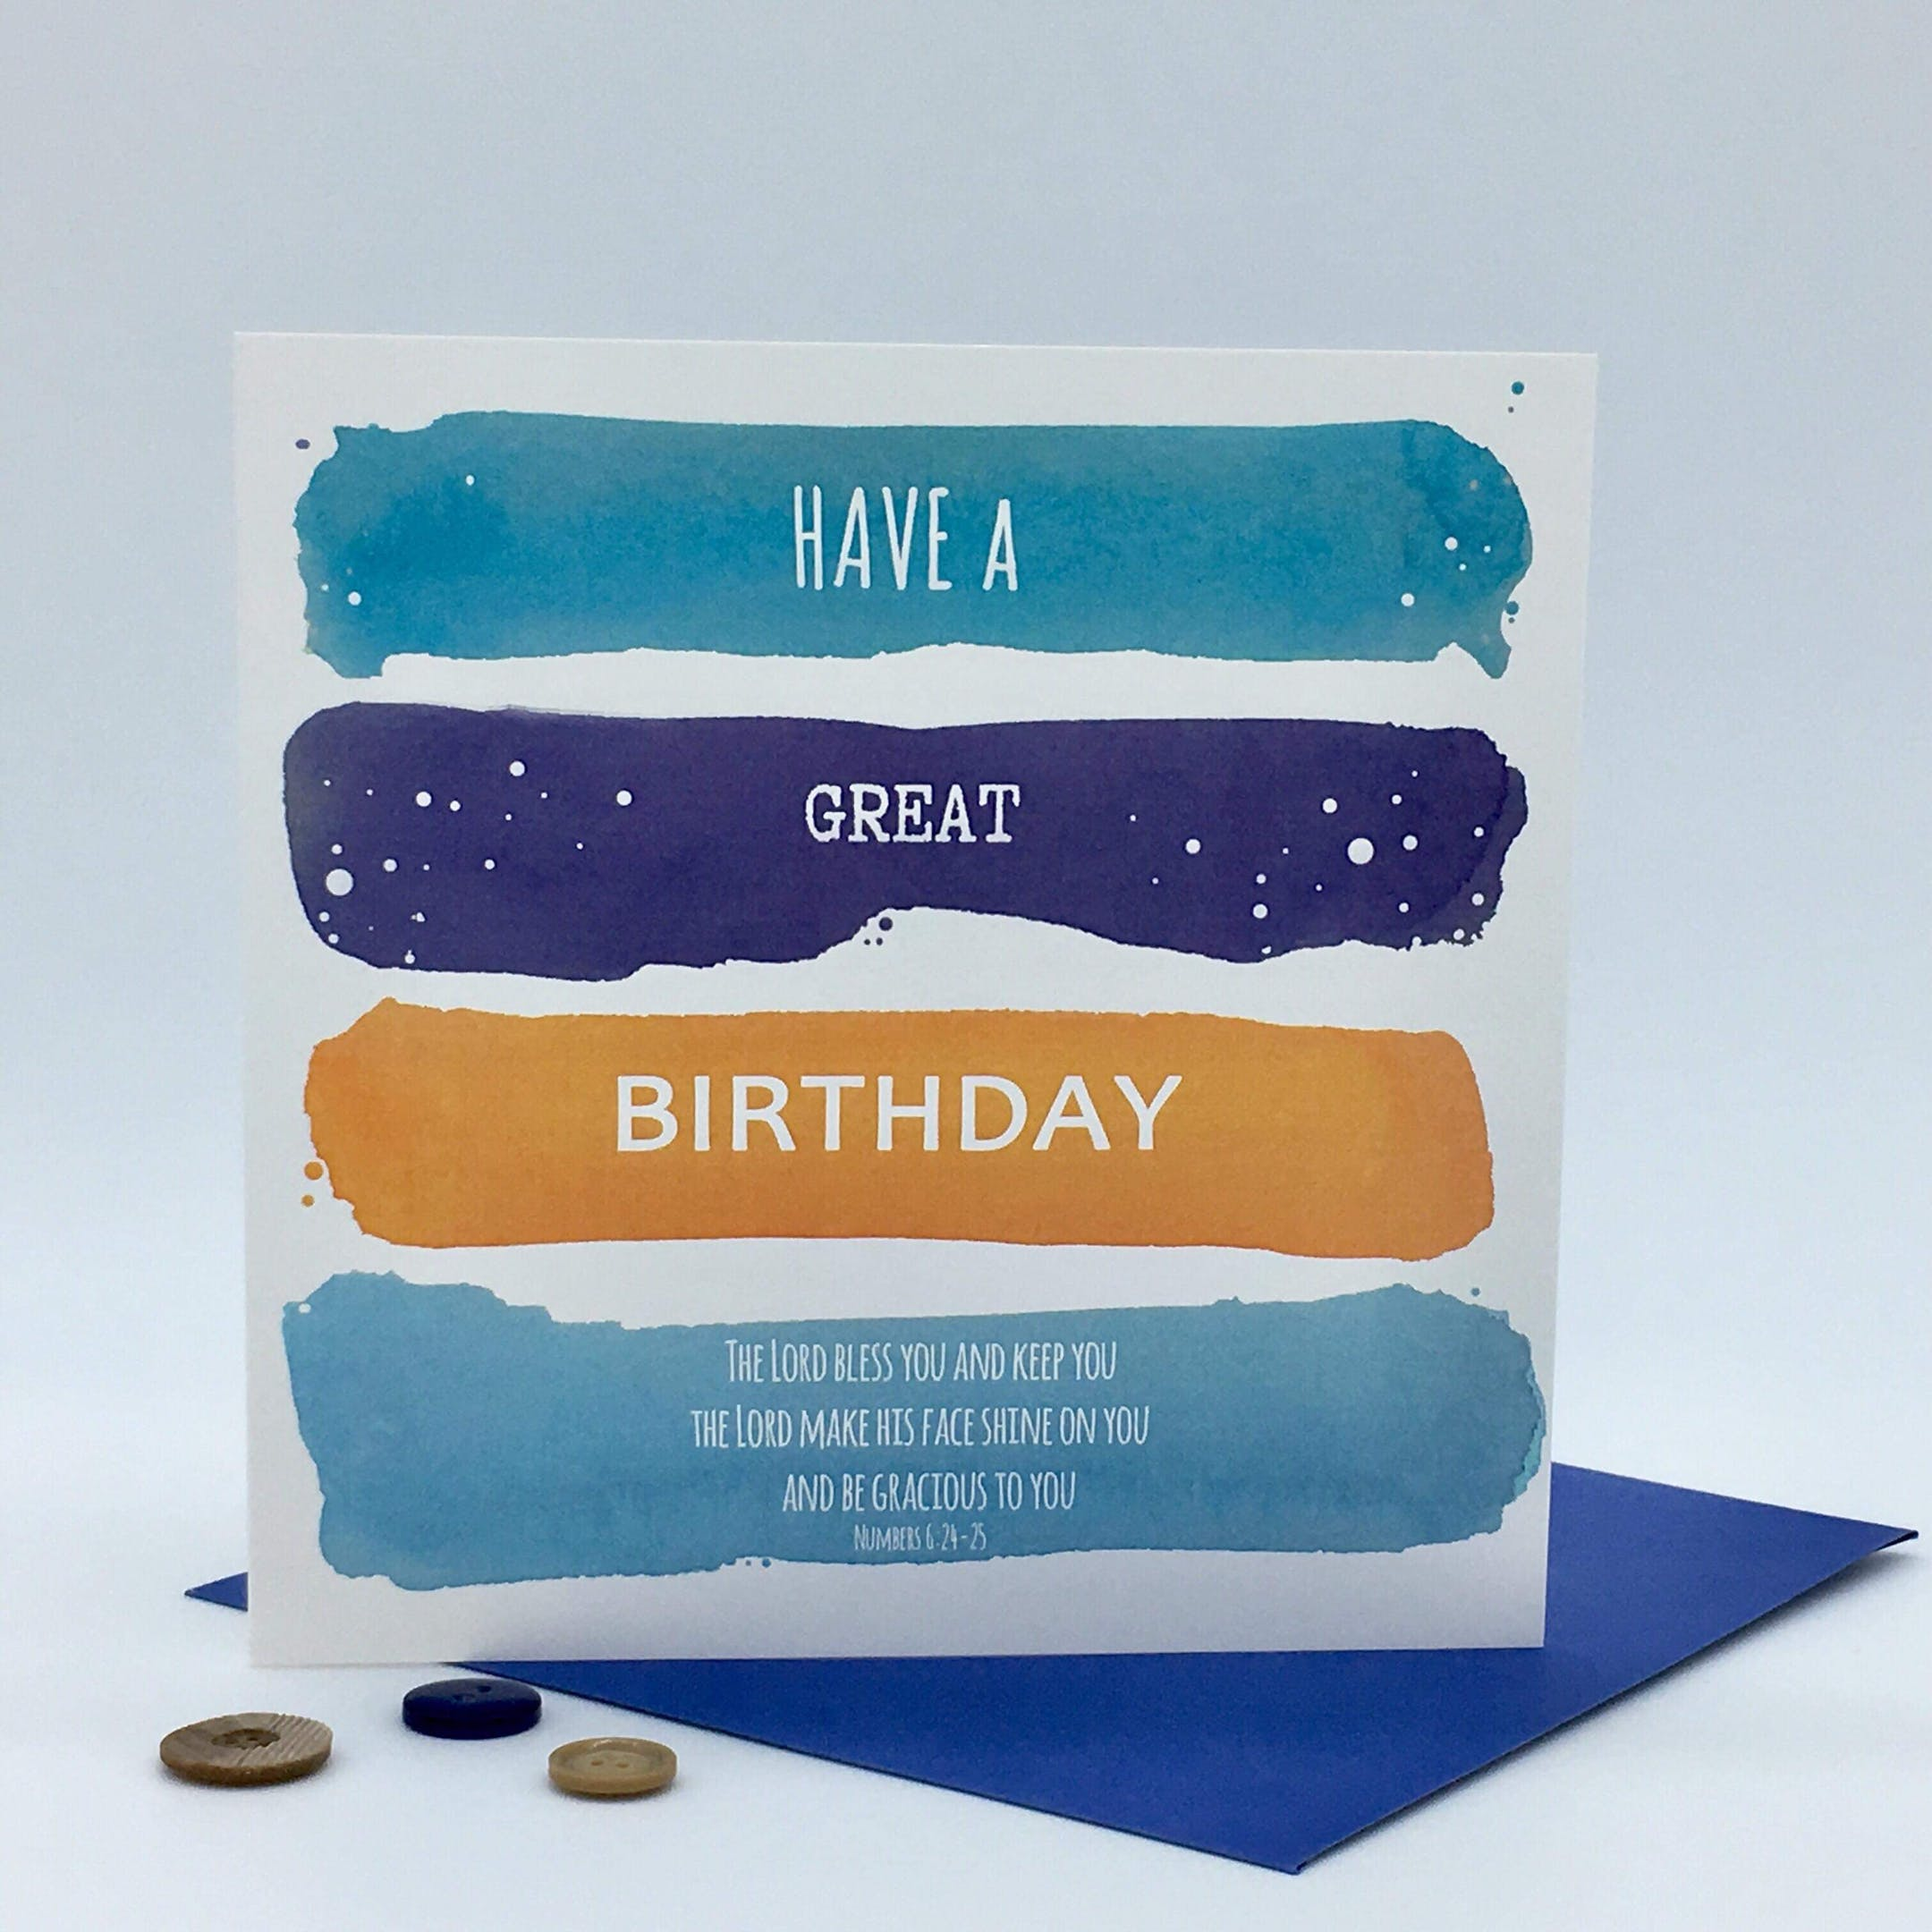 Have A Great Birthday Card - Numbers 6:24-25 - Forget-Me-Not Christian Cards